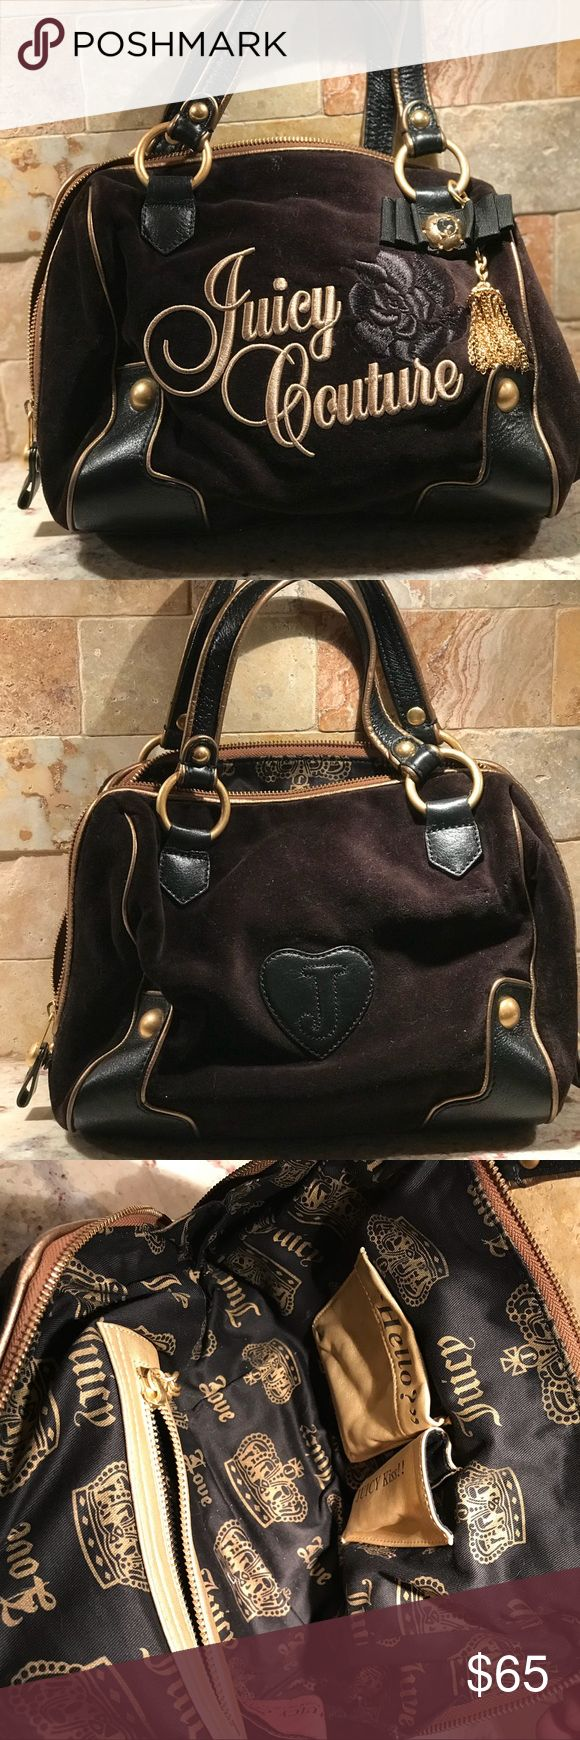 Juicy Couture handbag Never used. 65 obo. Juicy Couture Bags Mini Bags